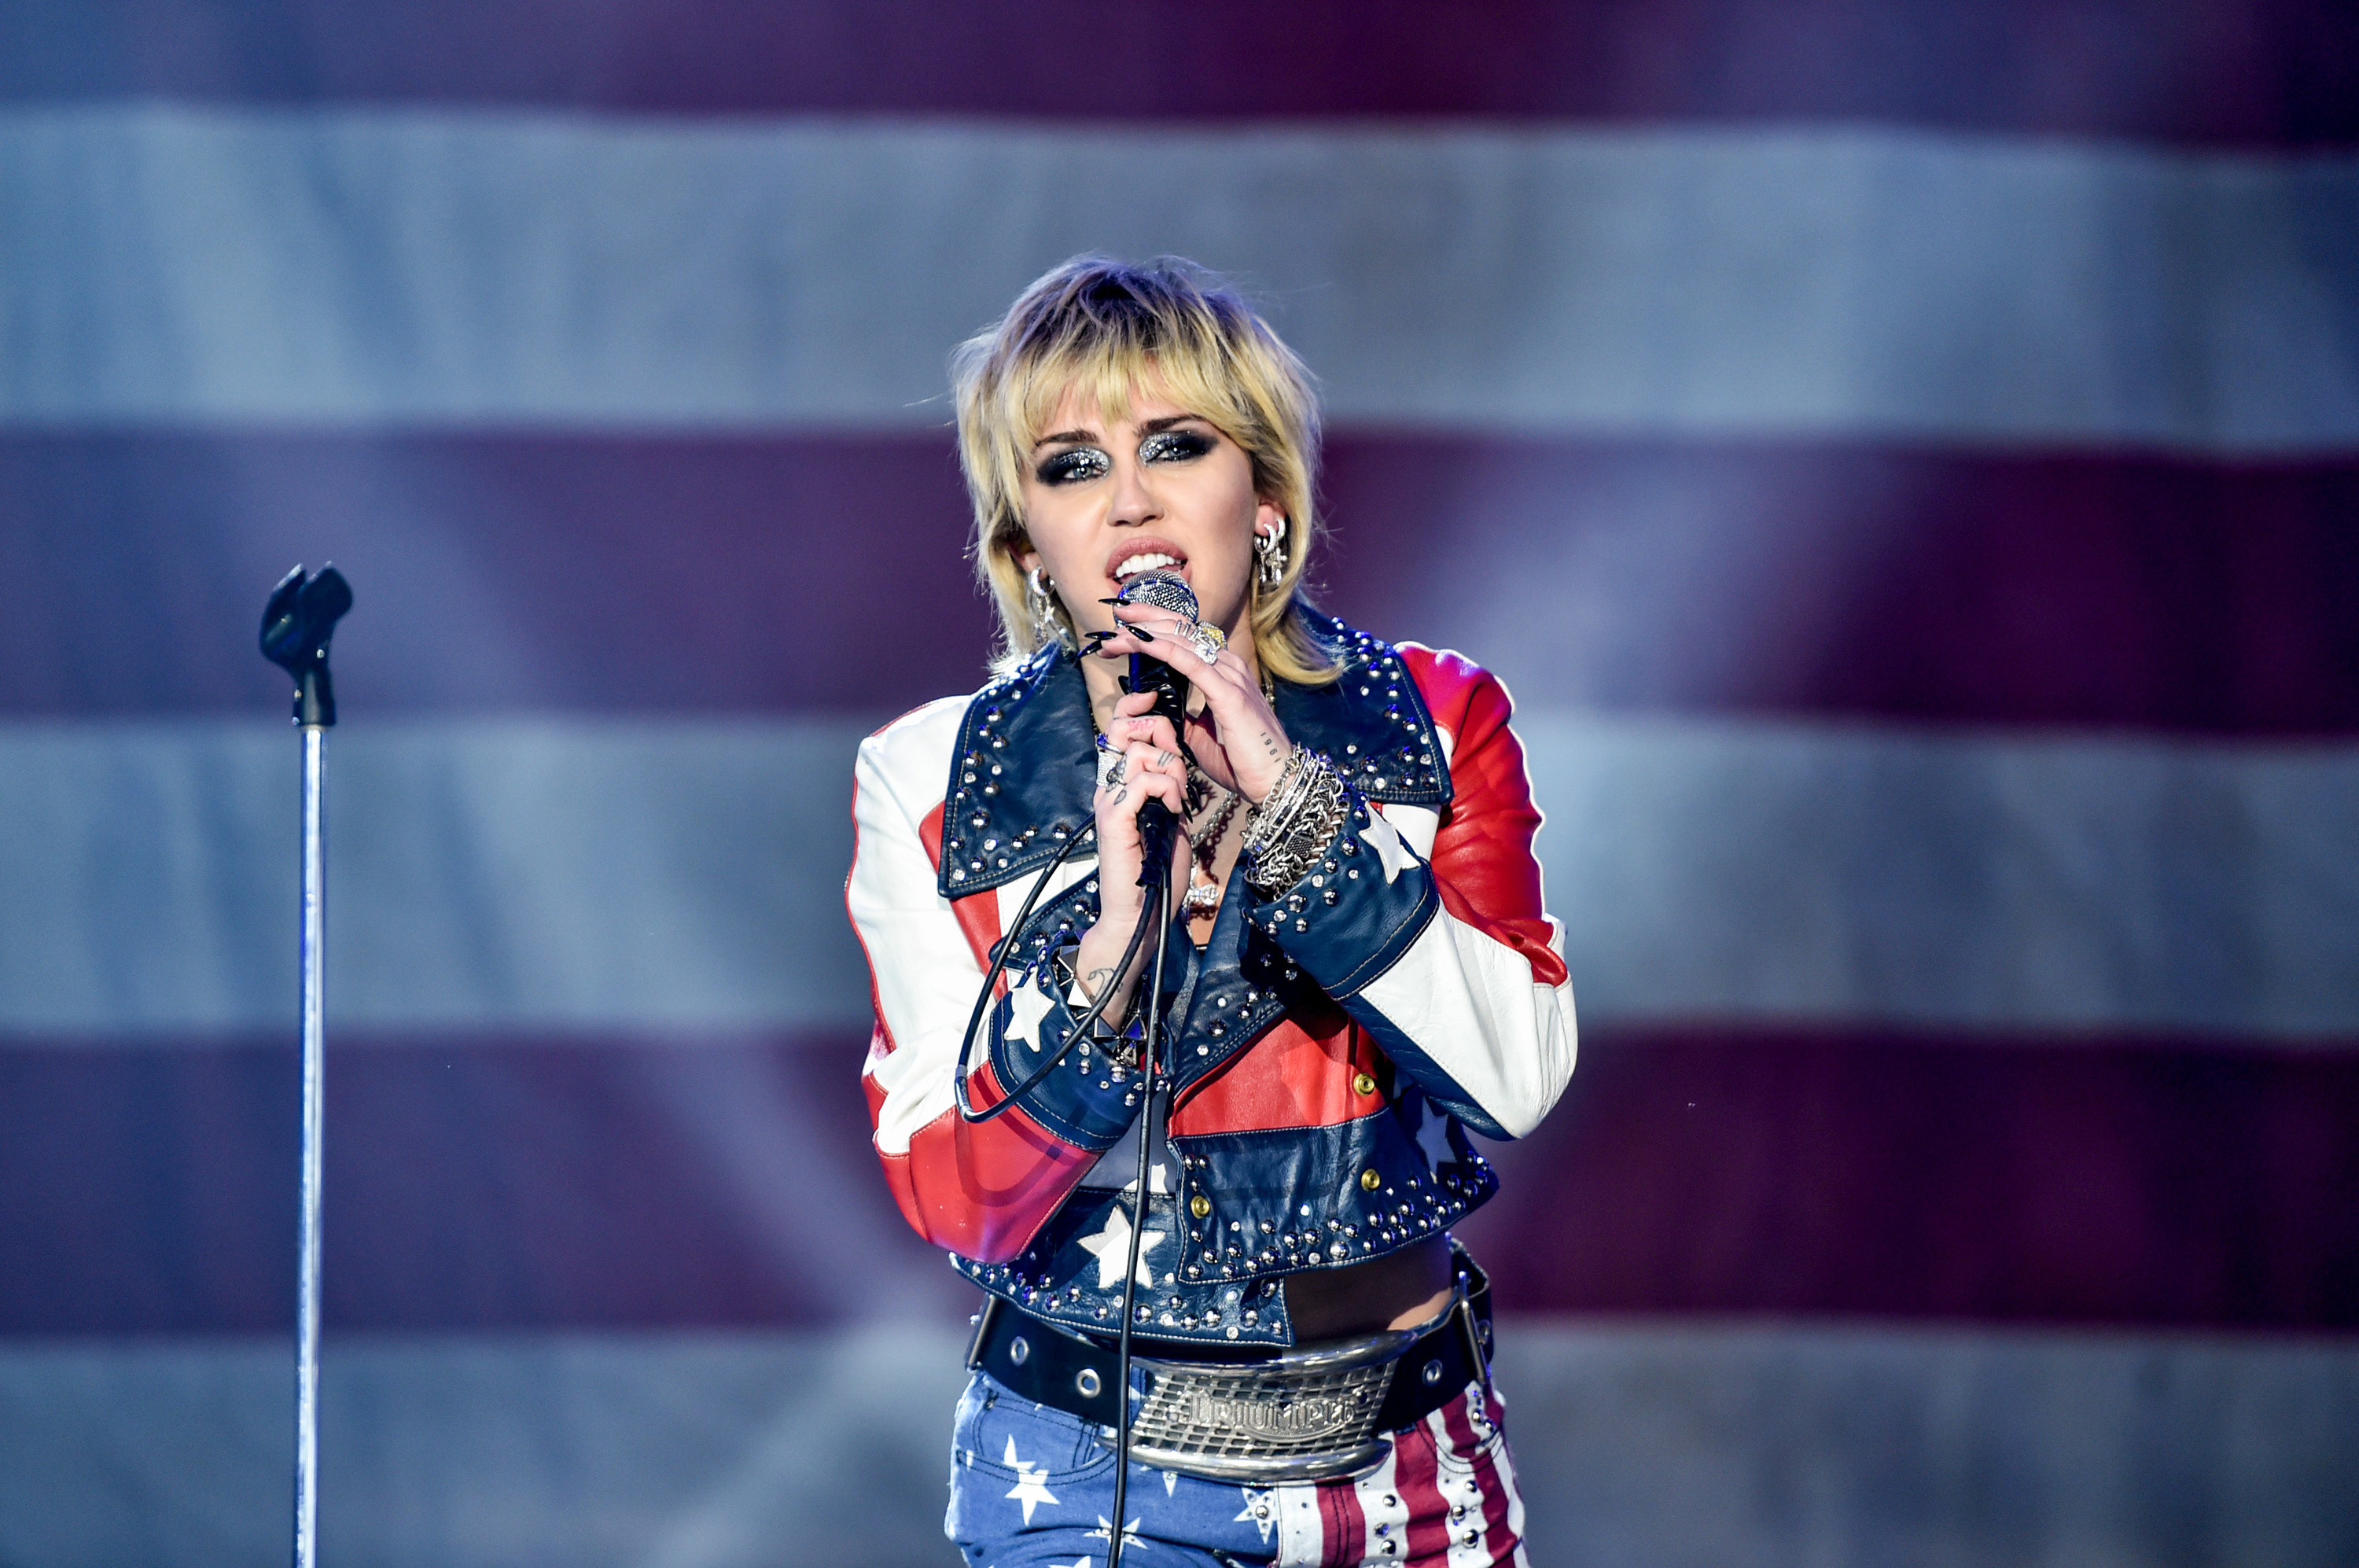 Miley Cyrus holds a microphone with both hands as she performs in front of an American flag